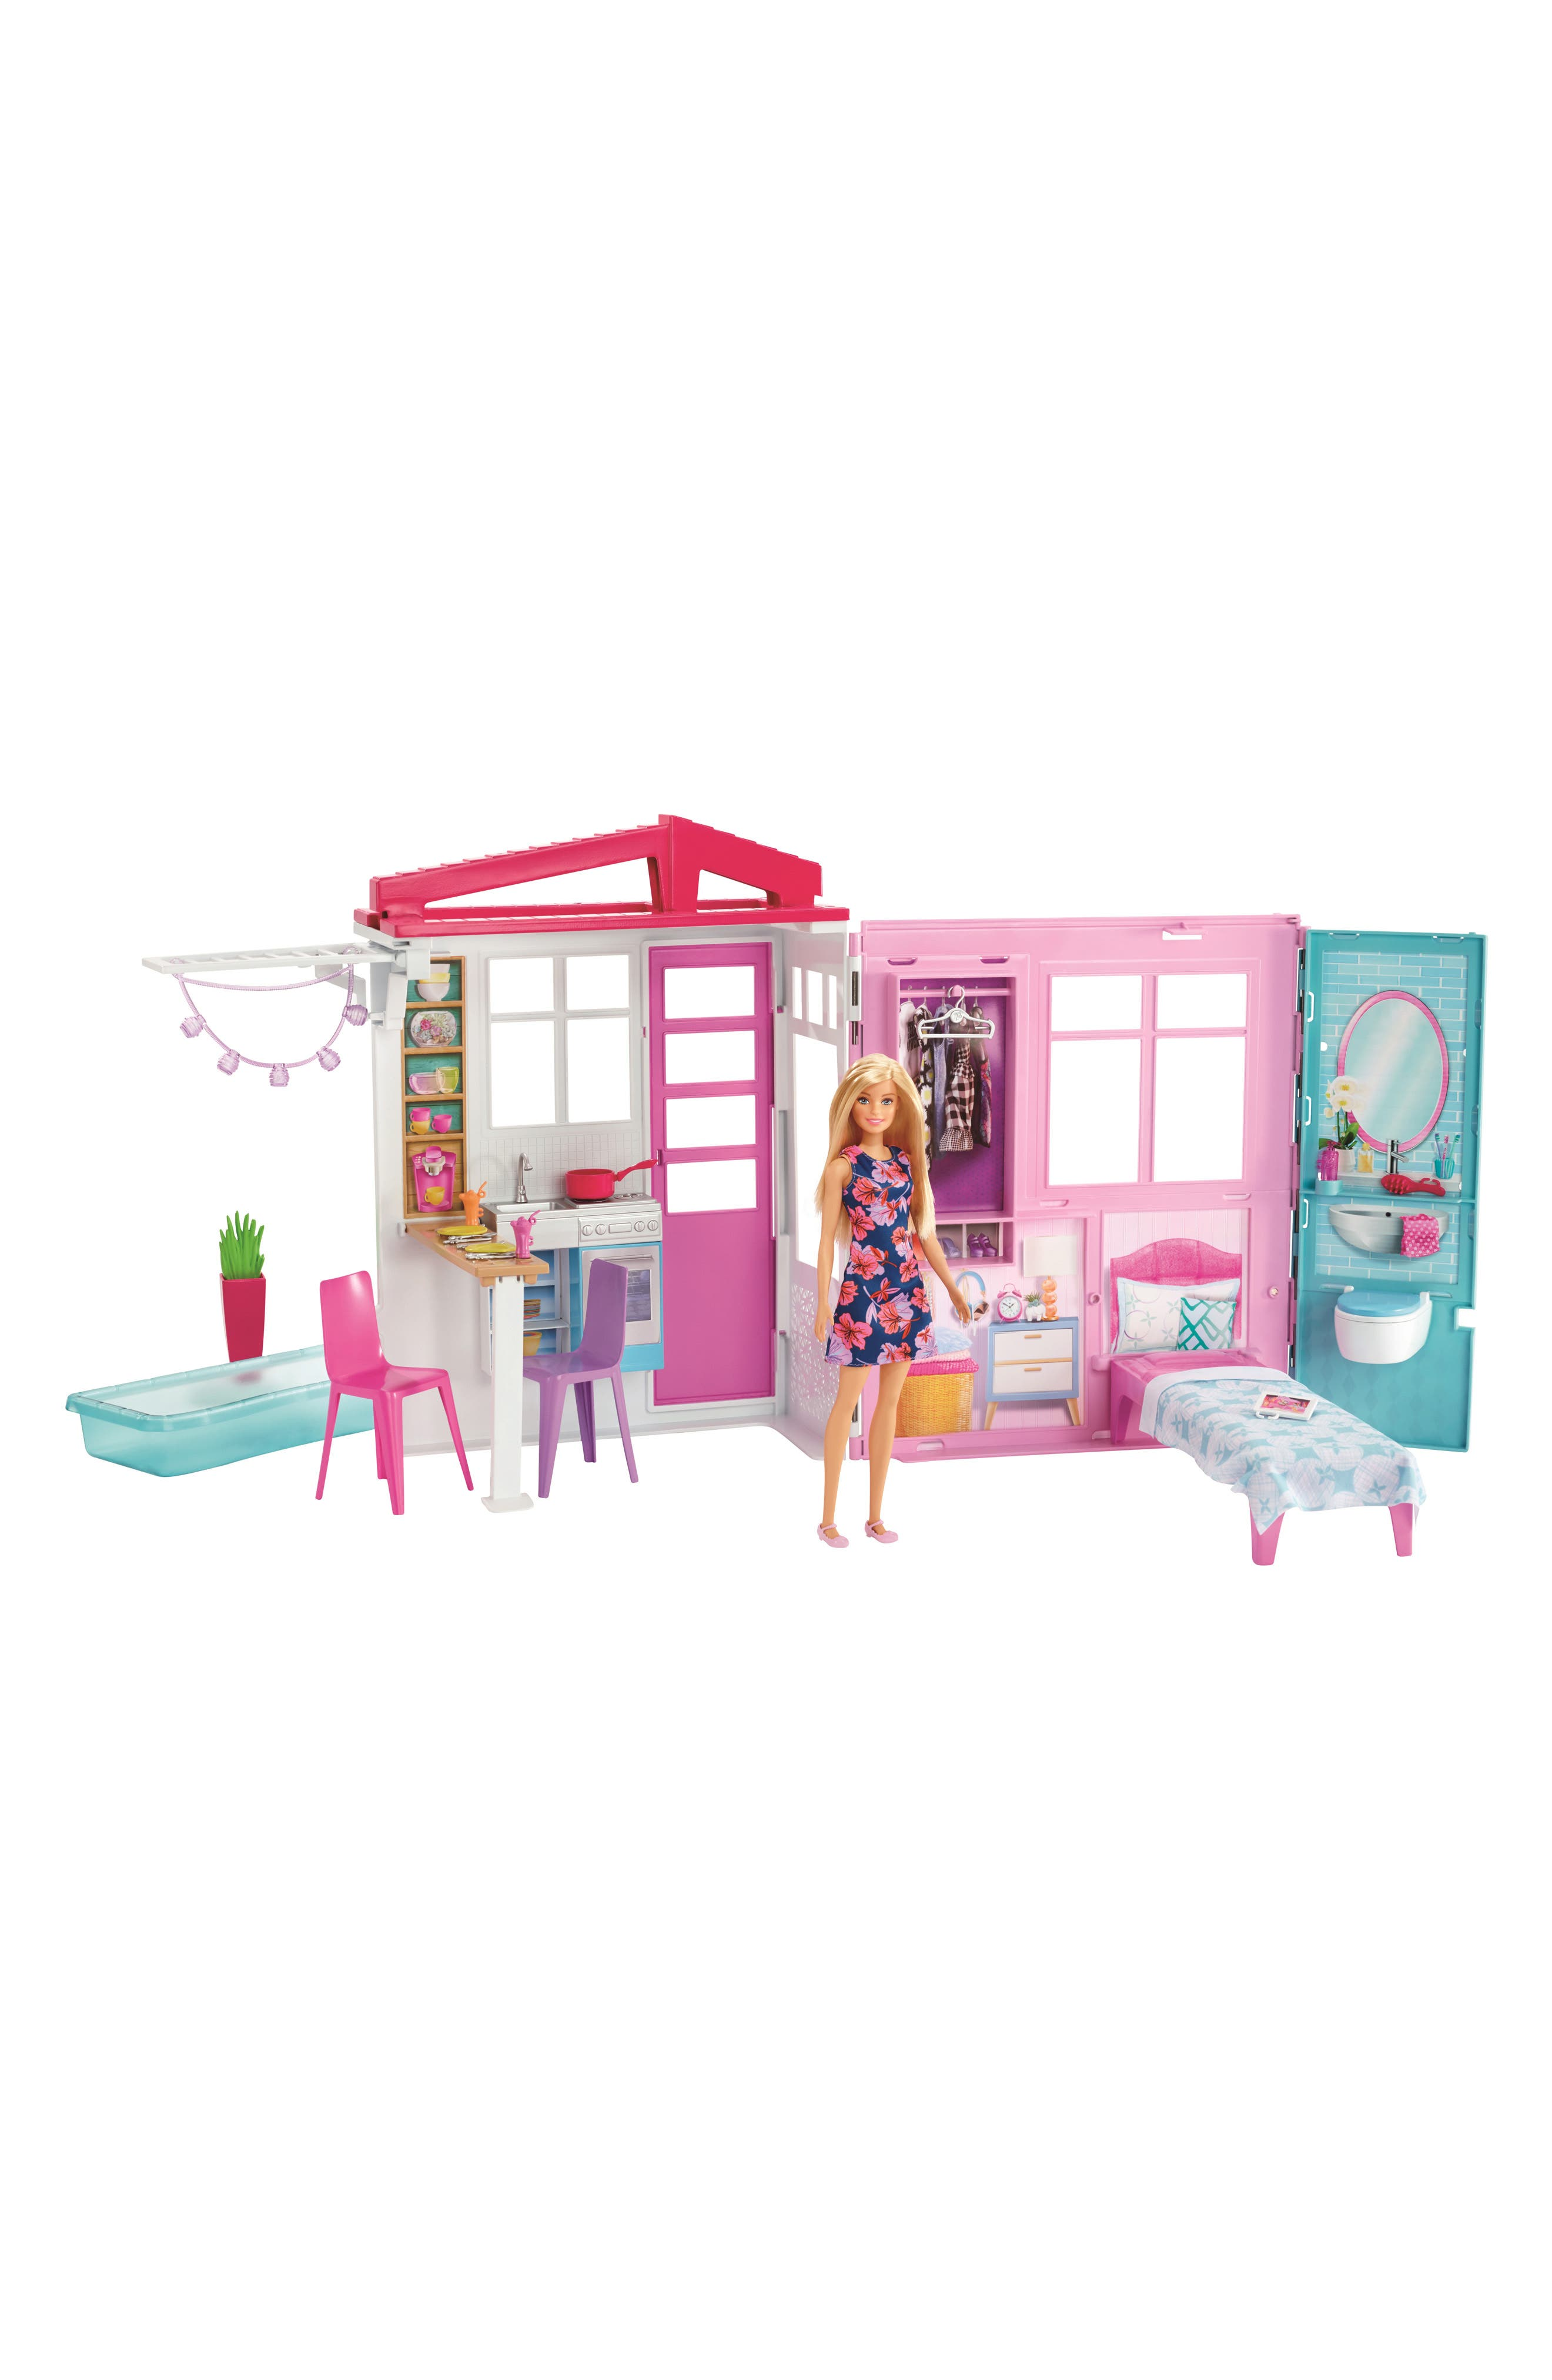 Image of Mattel Barbie Doll House